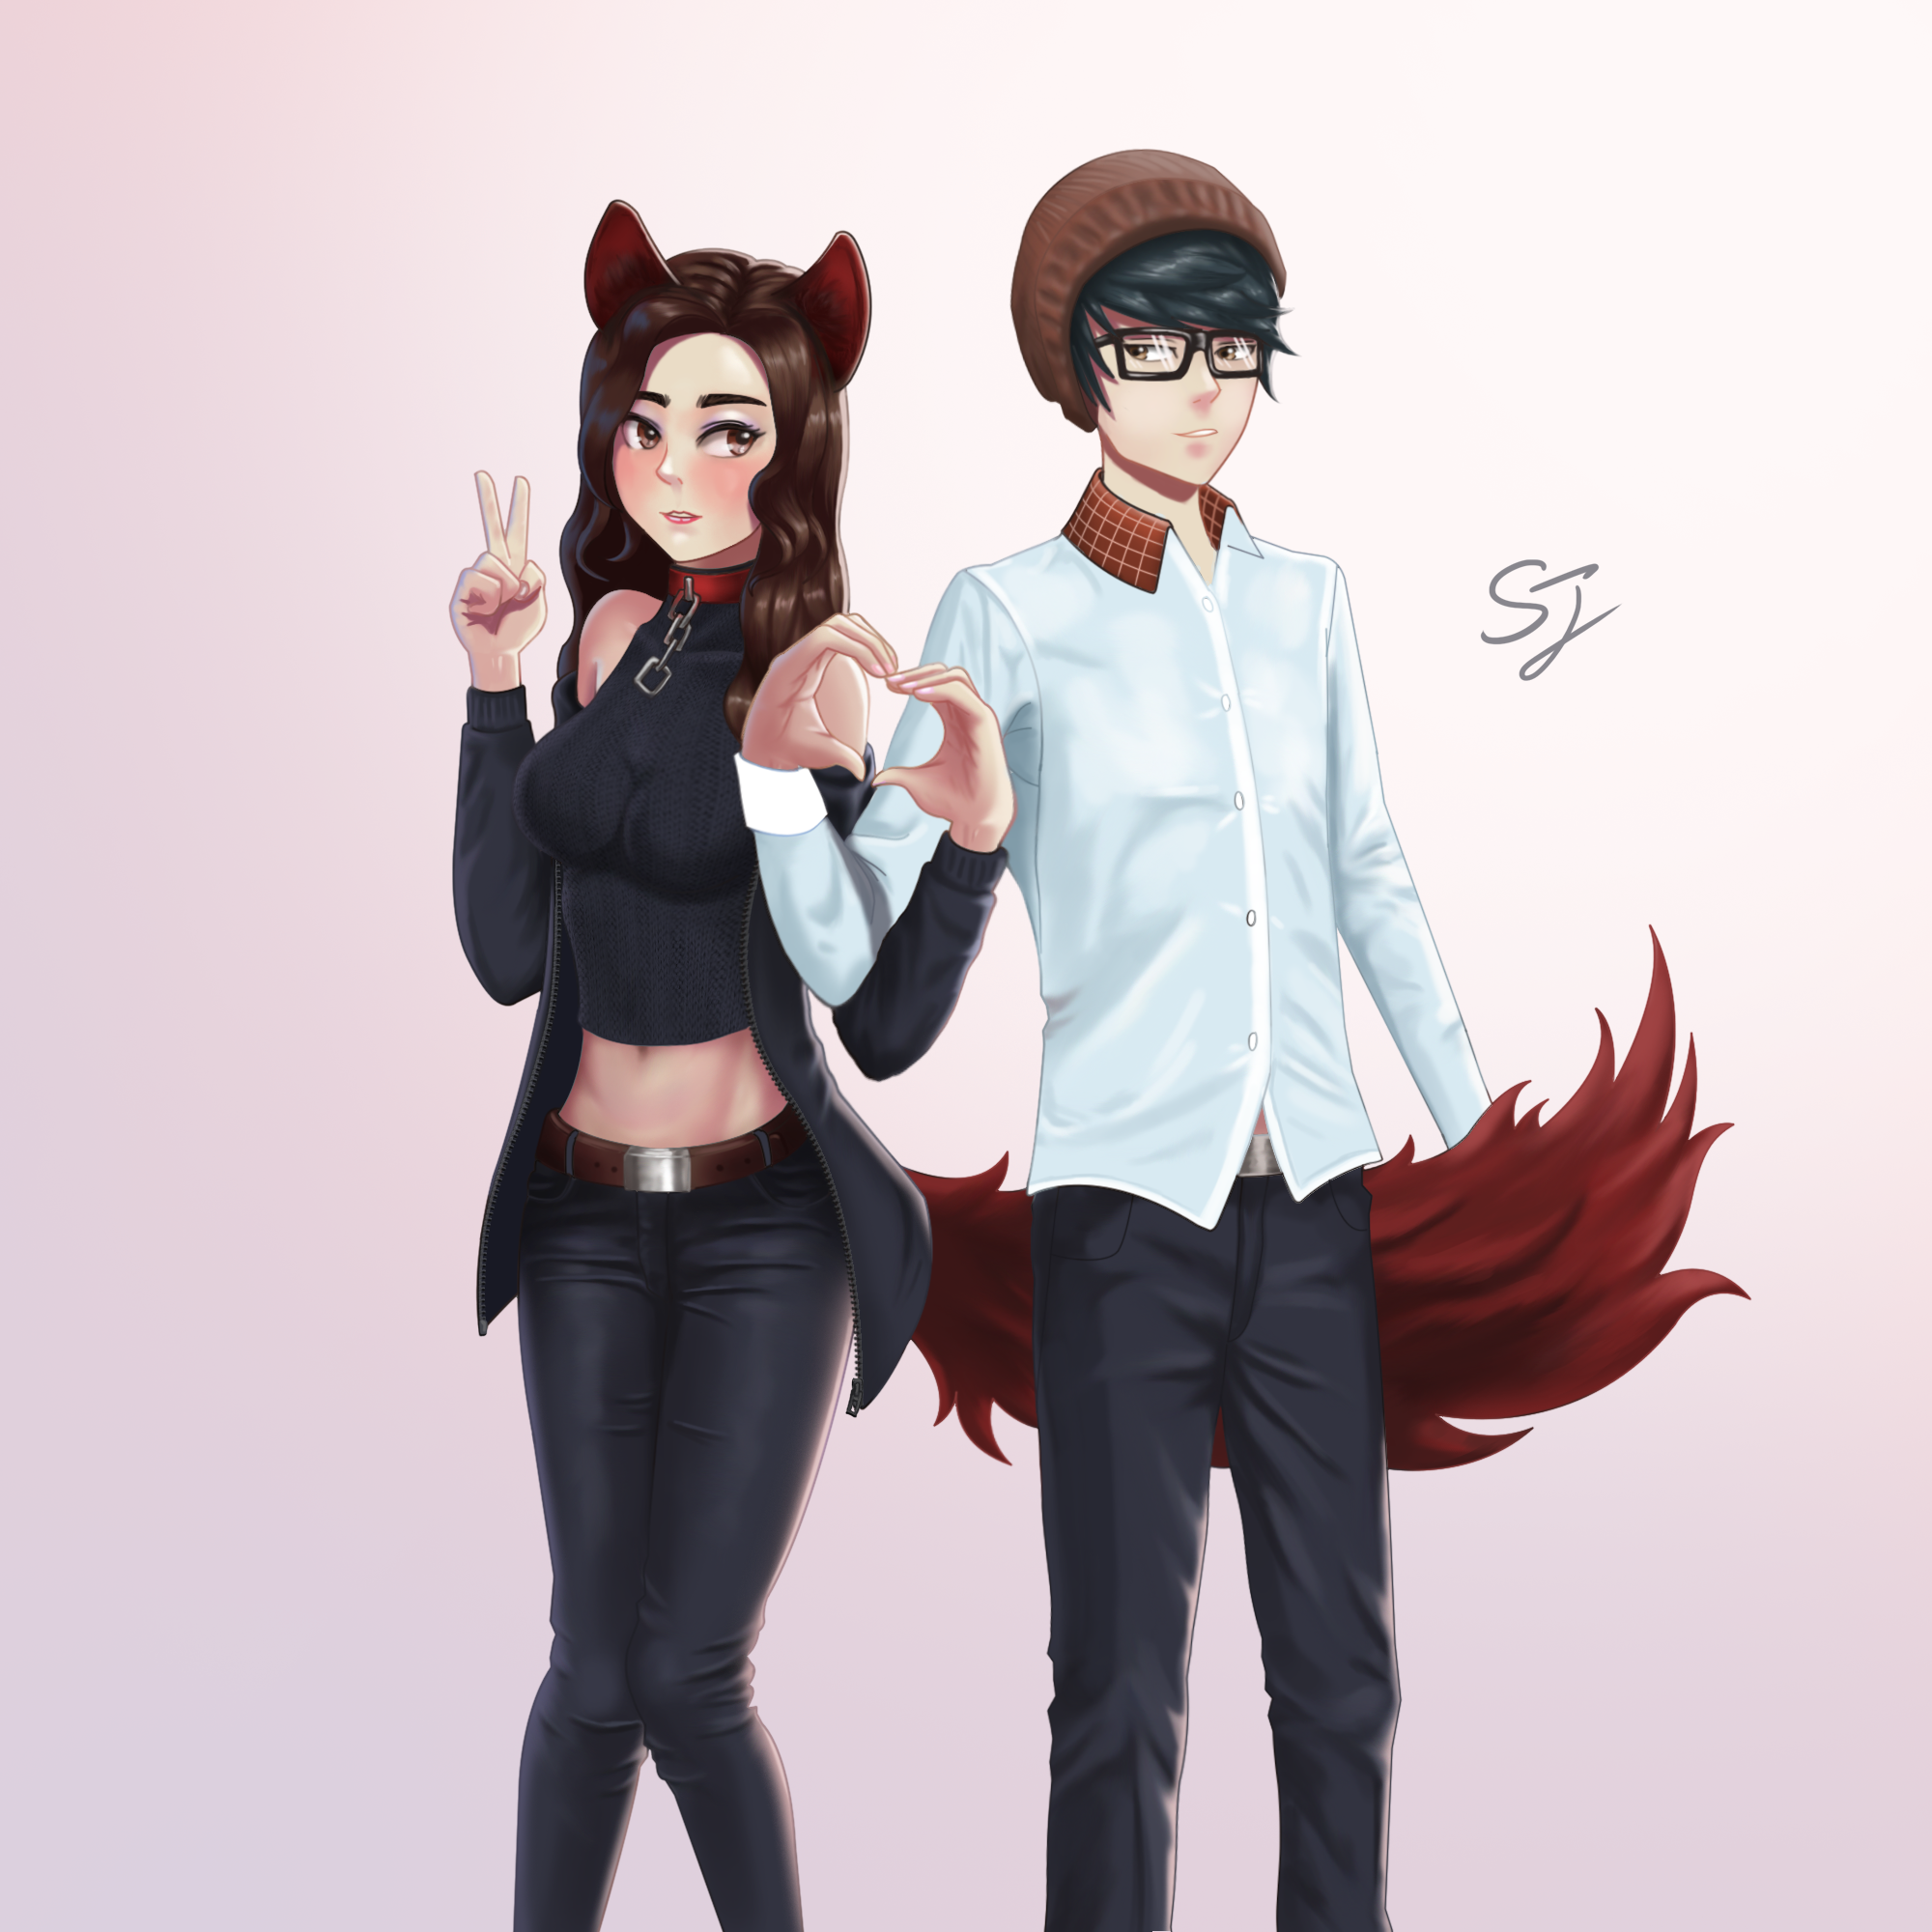 Commission vr chat avatar couple by songjoarts on deviantart for Deviantart vrchat avatars